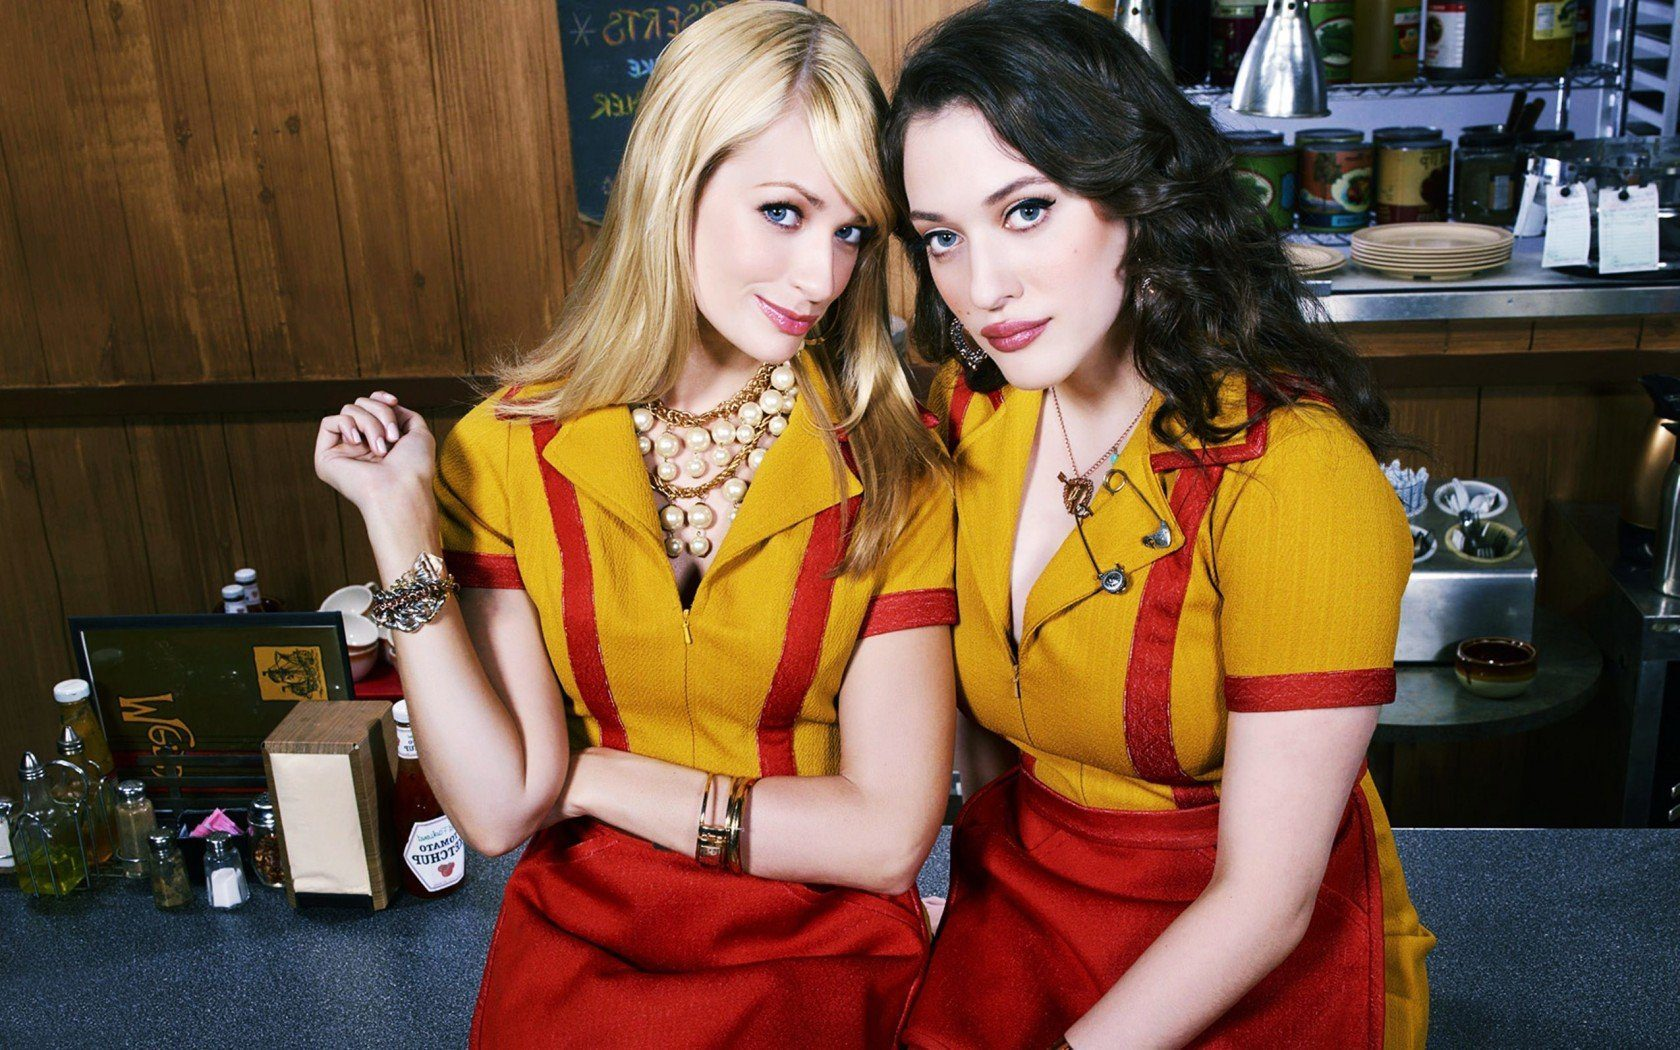 Beth Behrs with Kat dennings in Two broke girls